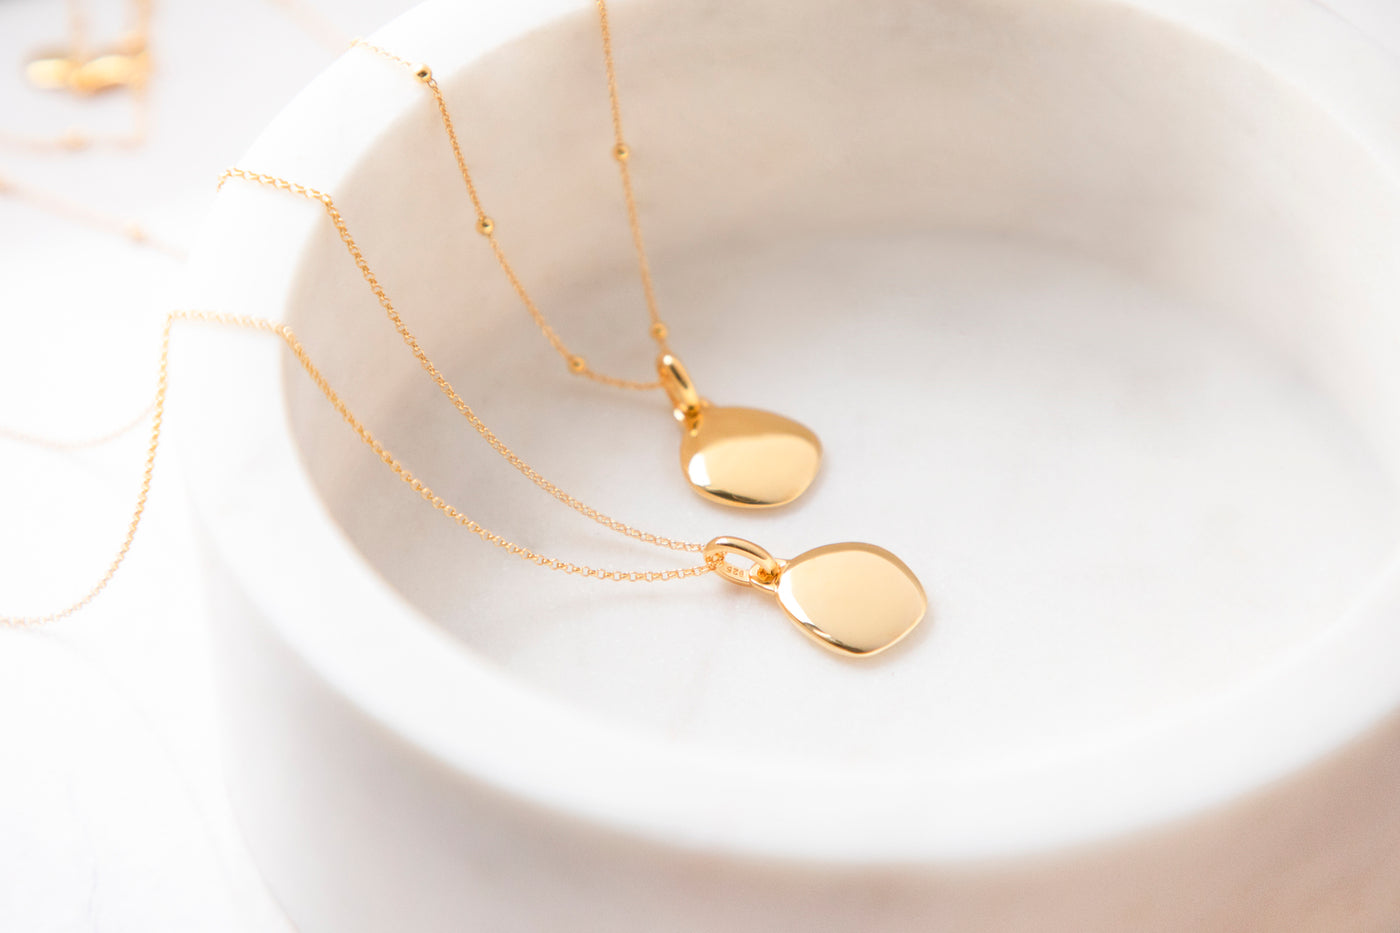 Lena Pebble Necklace